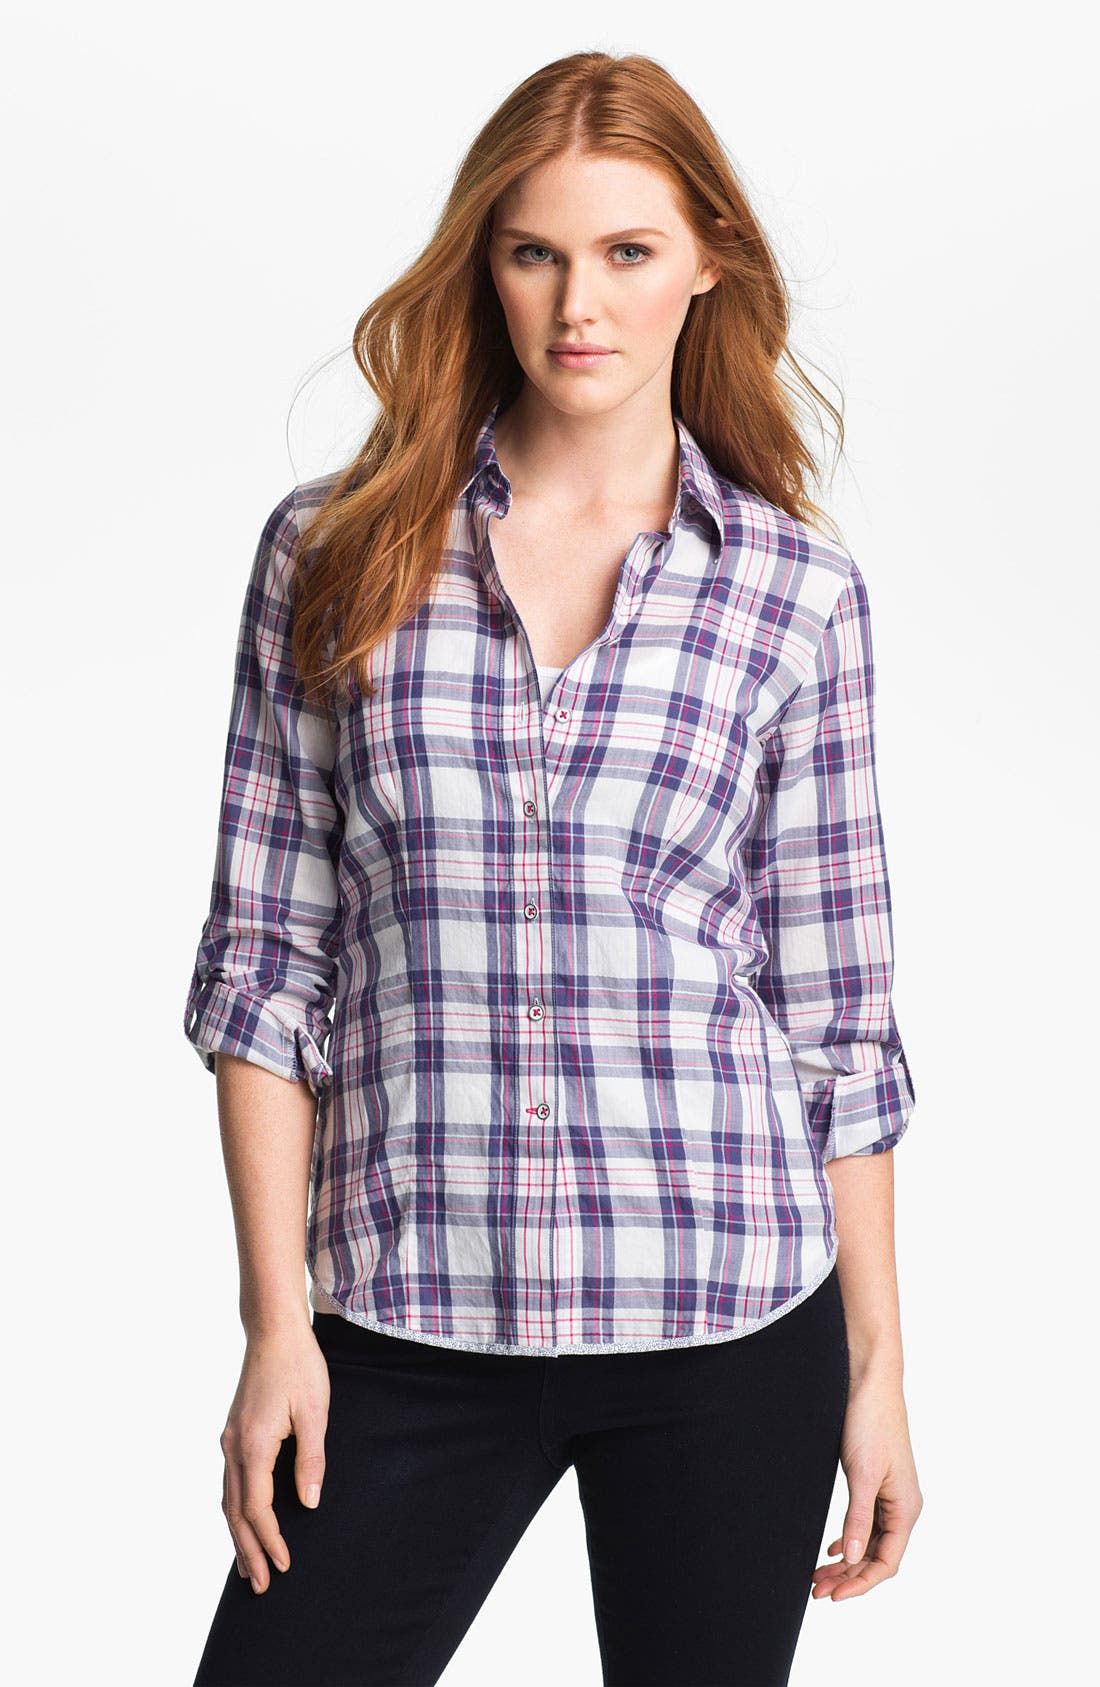 Alternate Image 1 Selected - Shirt 469 Plaid Poplin Shirt